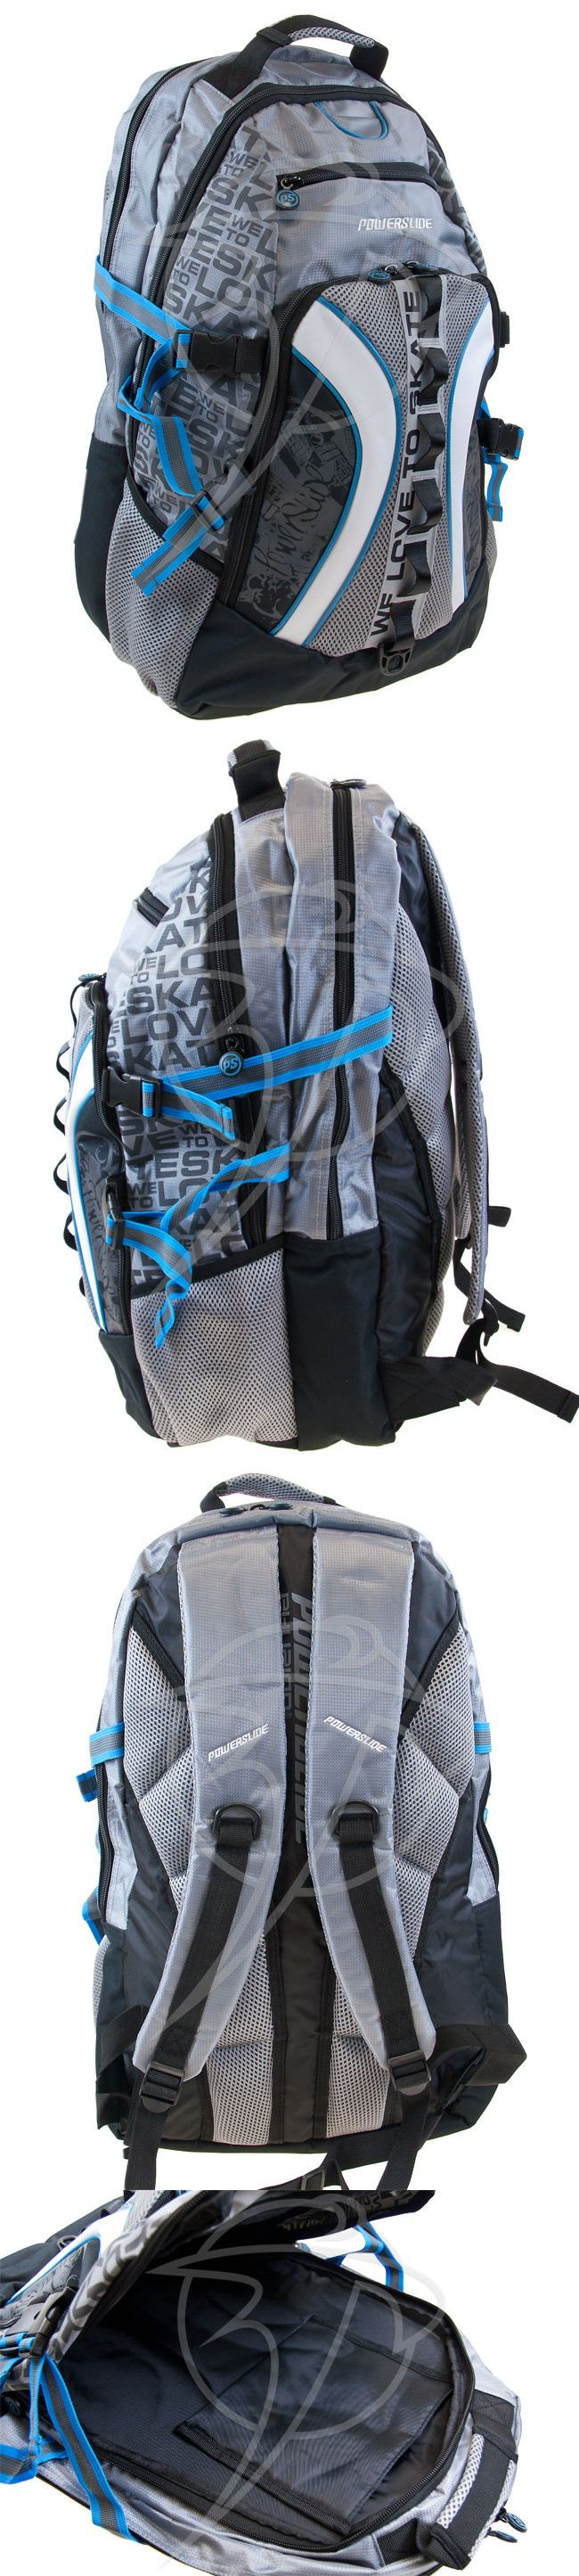 Other Inline and Roller Skating 1301: Powerslide Phzion Backpack ....New -> BUY IT NOW ONLY: $39 on eBay!